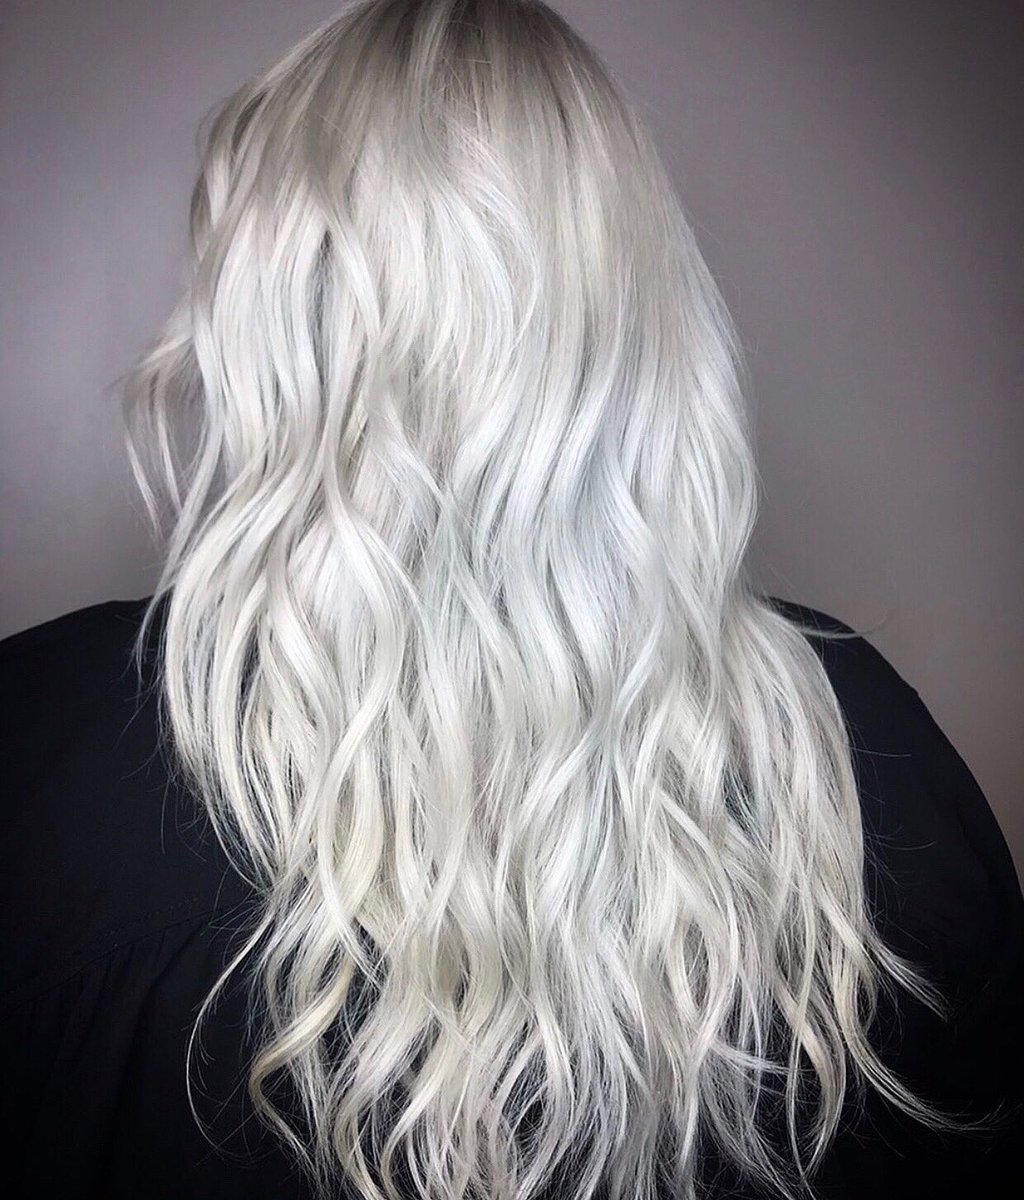 If this hair were an album, it would go PLATINUM : @ bevshouse (IG) . . . #platinumhair #gooddyeyoung pic.twitter.com/HAVuCRSwuo